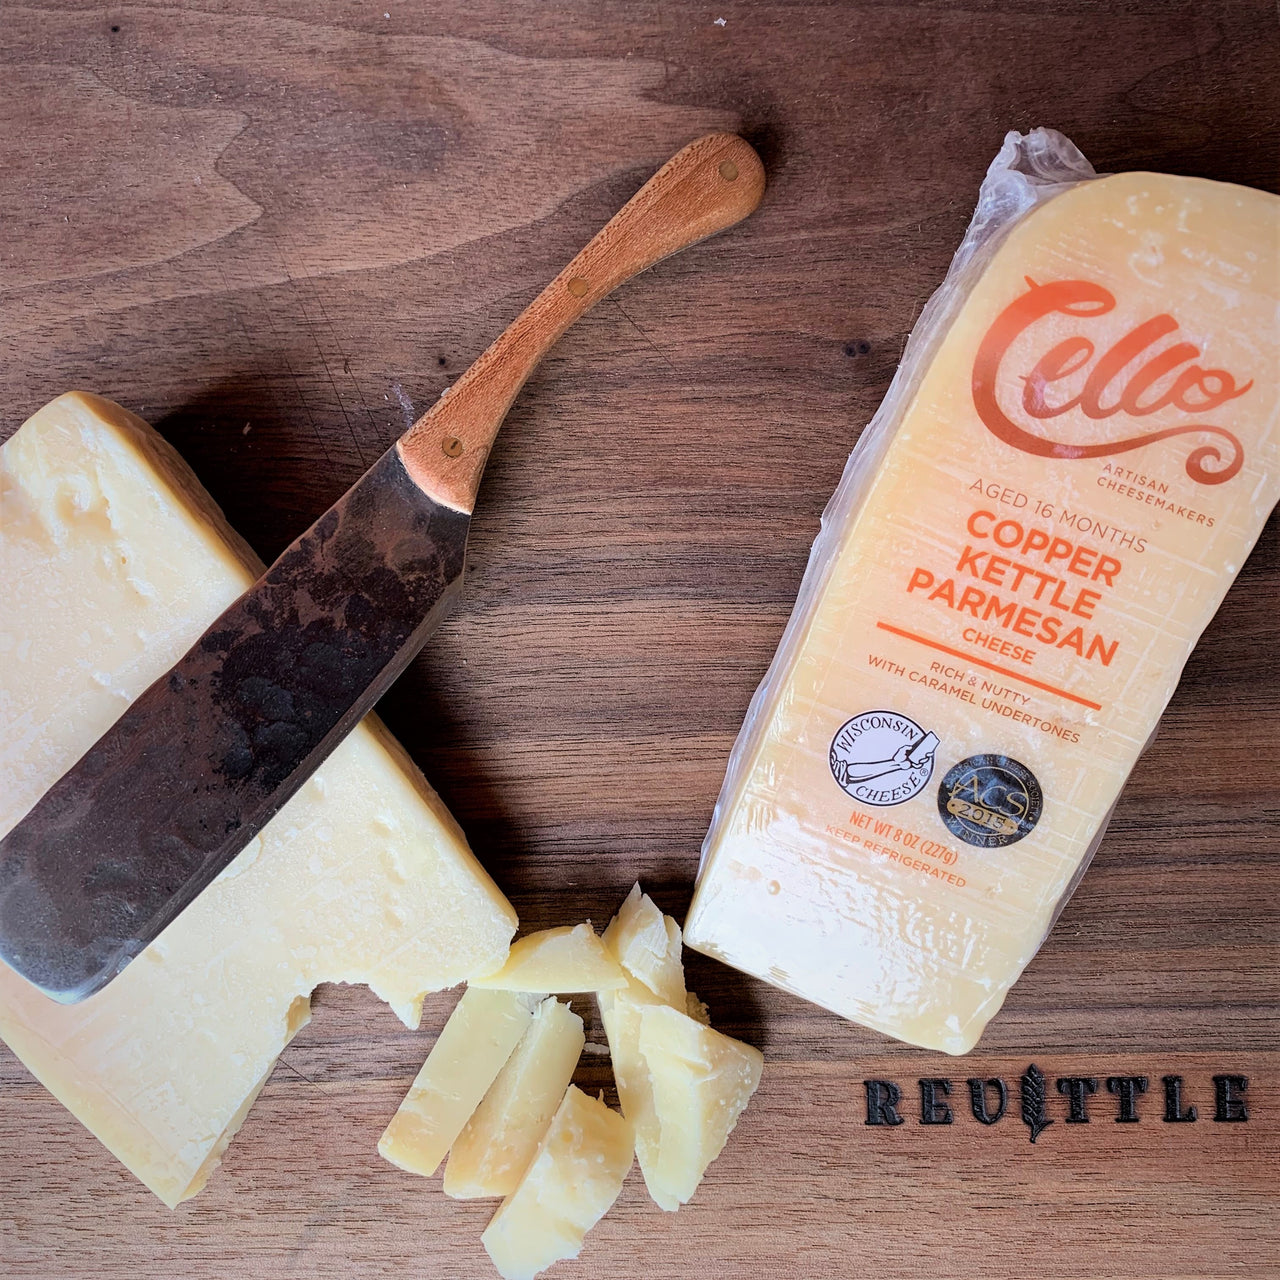 Cello Copper Kettle Parmesan | Revittle